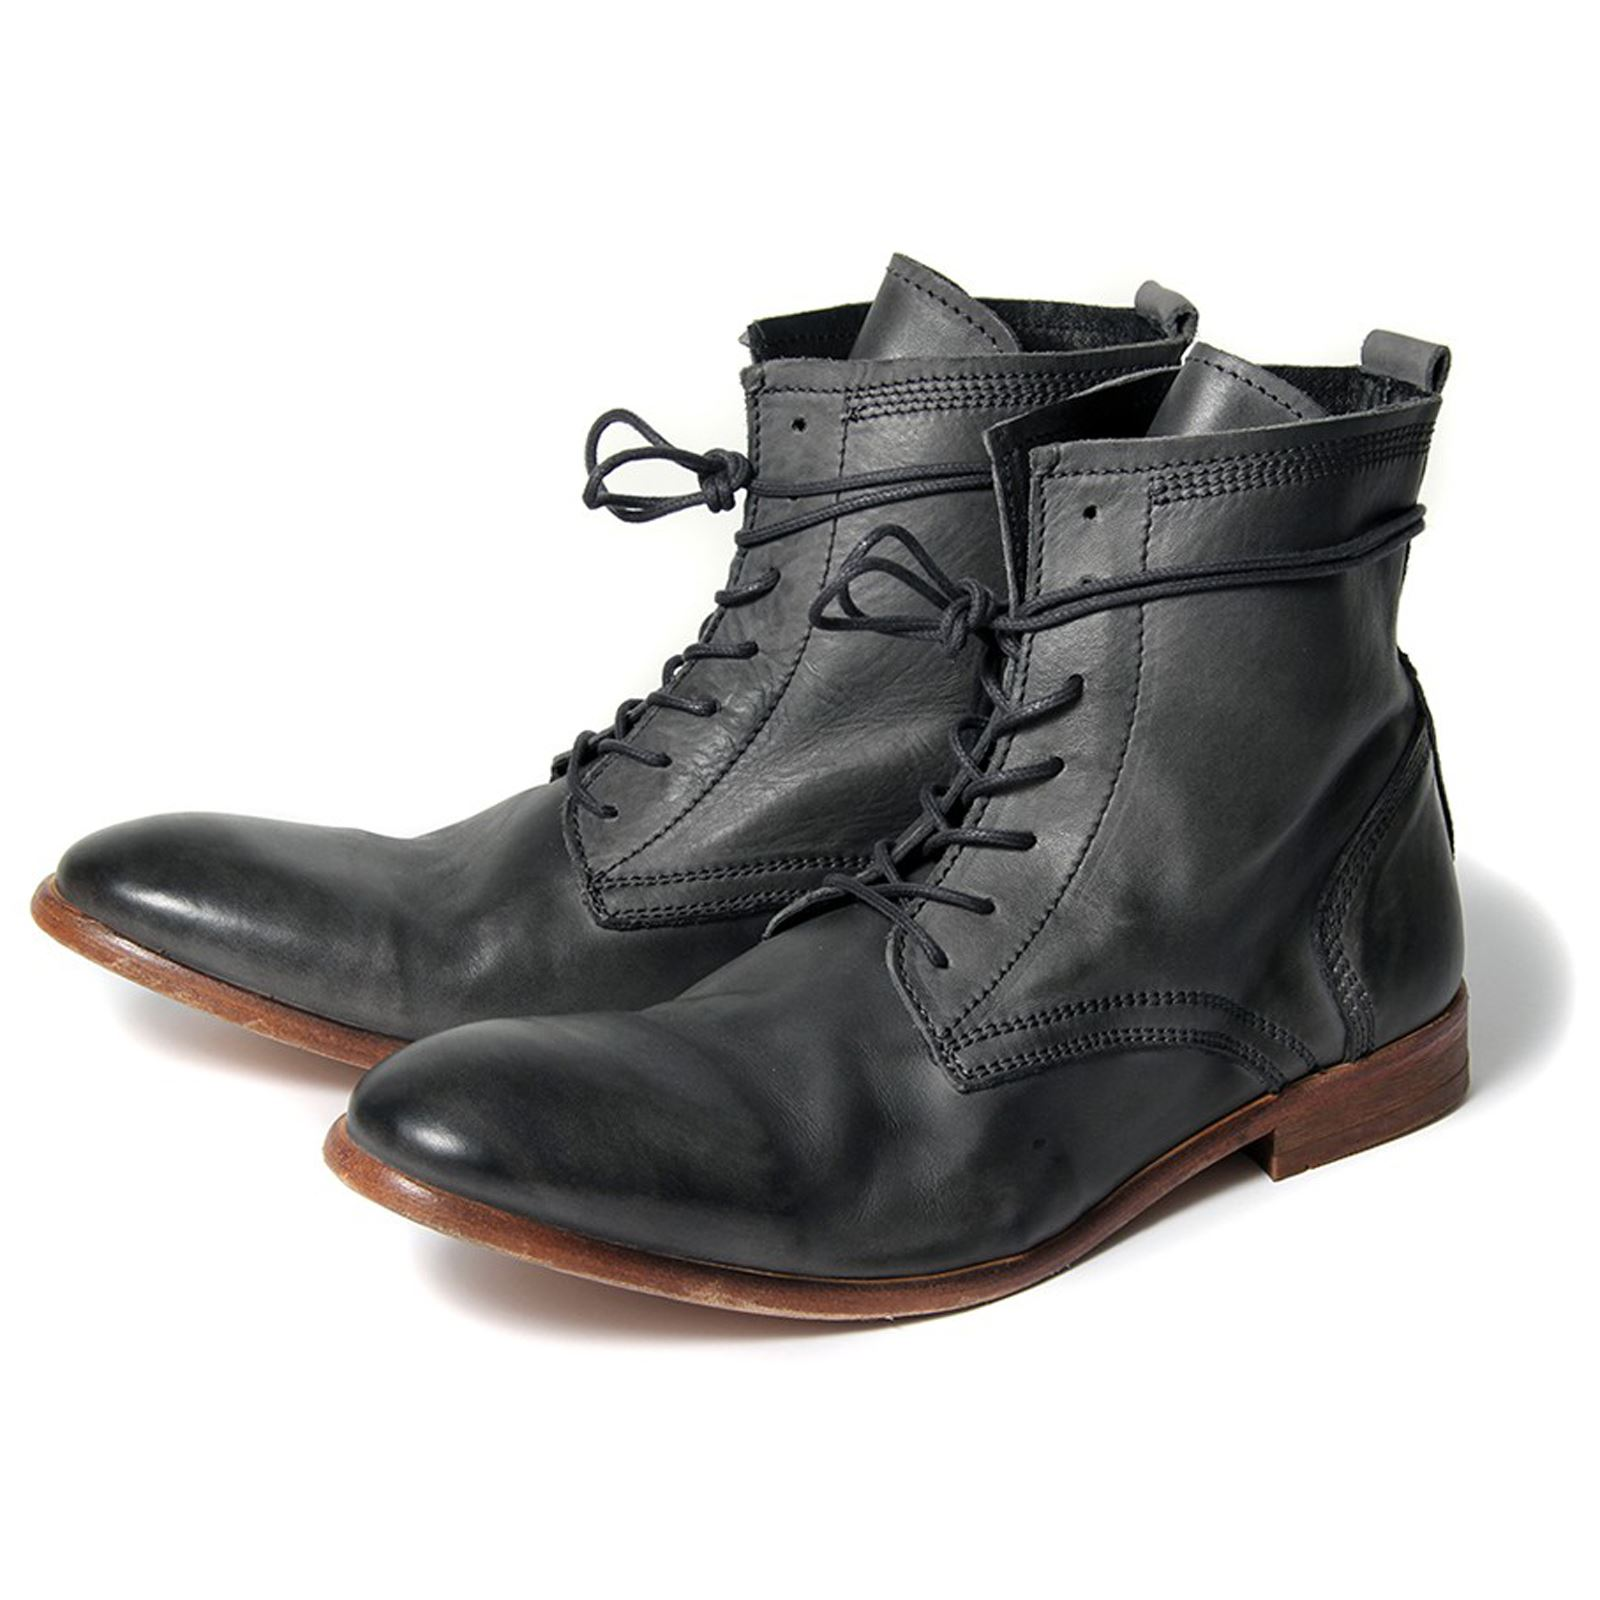 Free shipping BOTH ways on Boots, Gray, Women, from our vast selection of styles. Fast delivery, and 24/7/ real-person service with a smile. Click or call